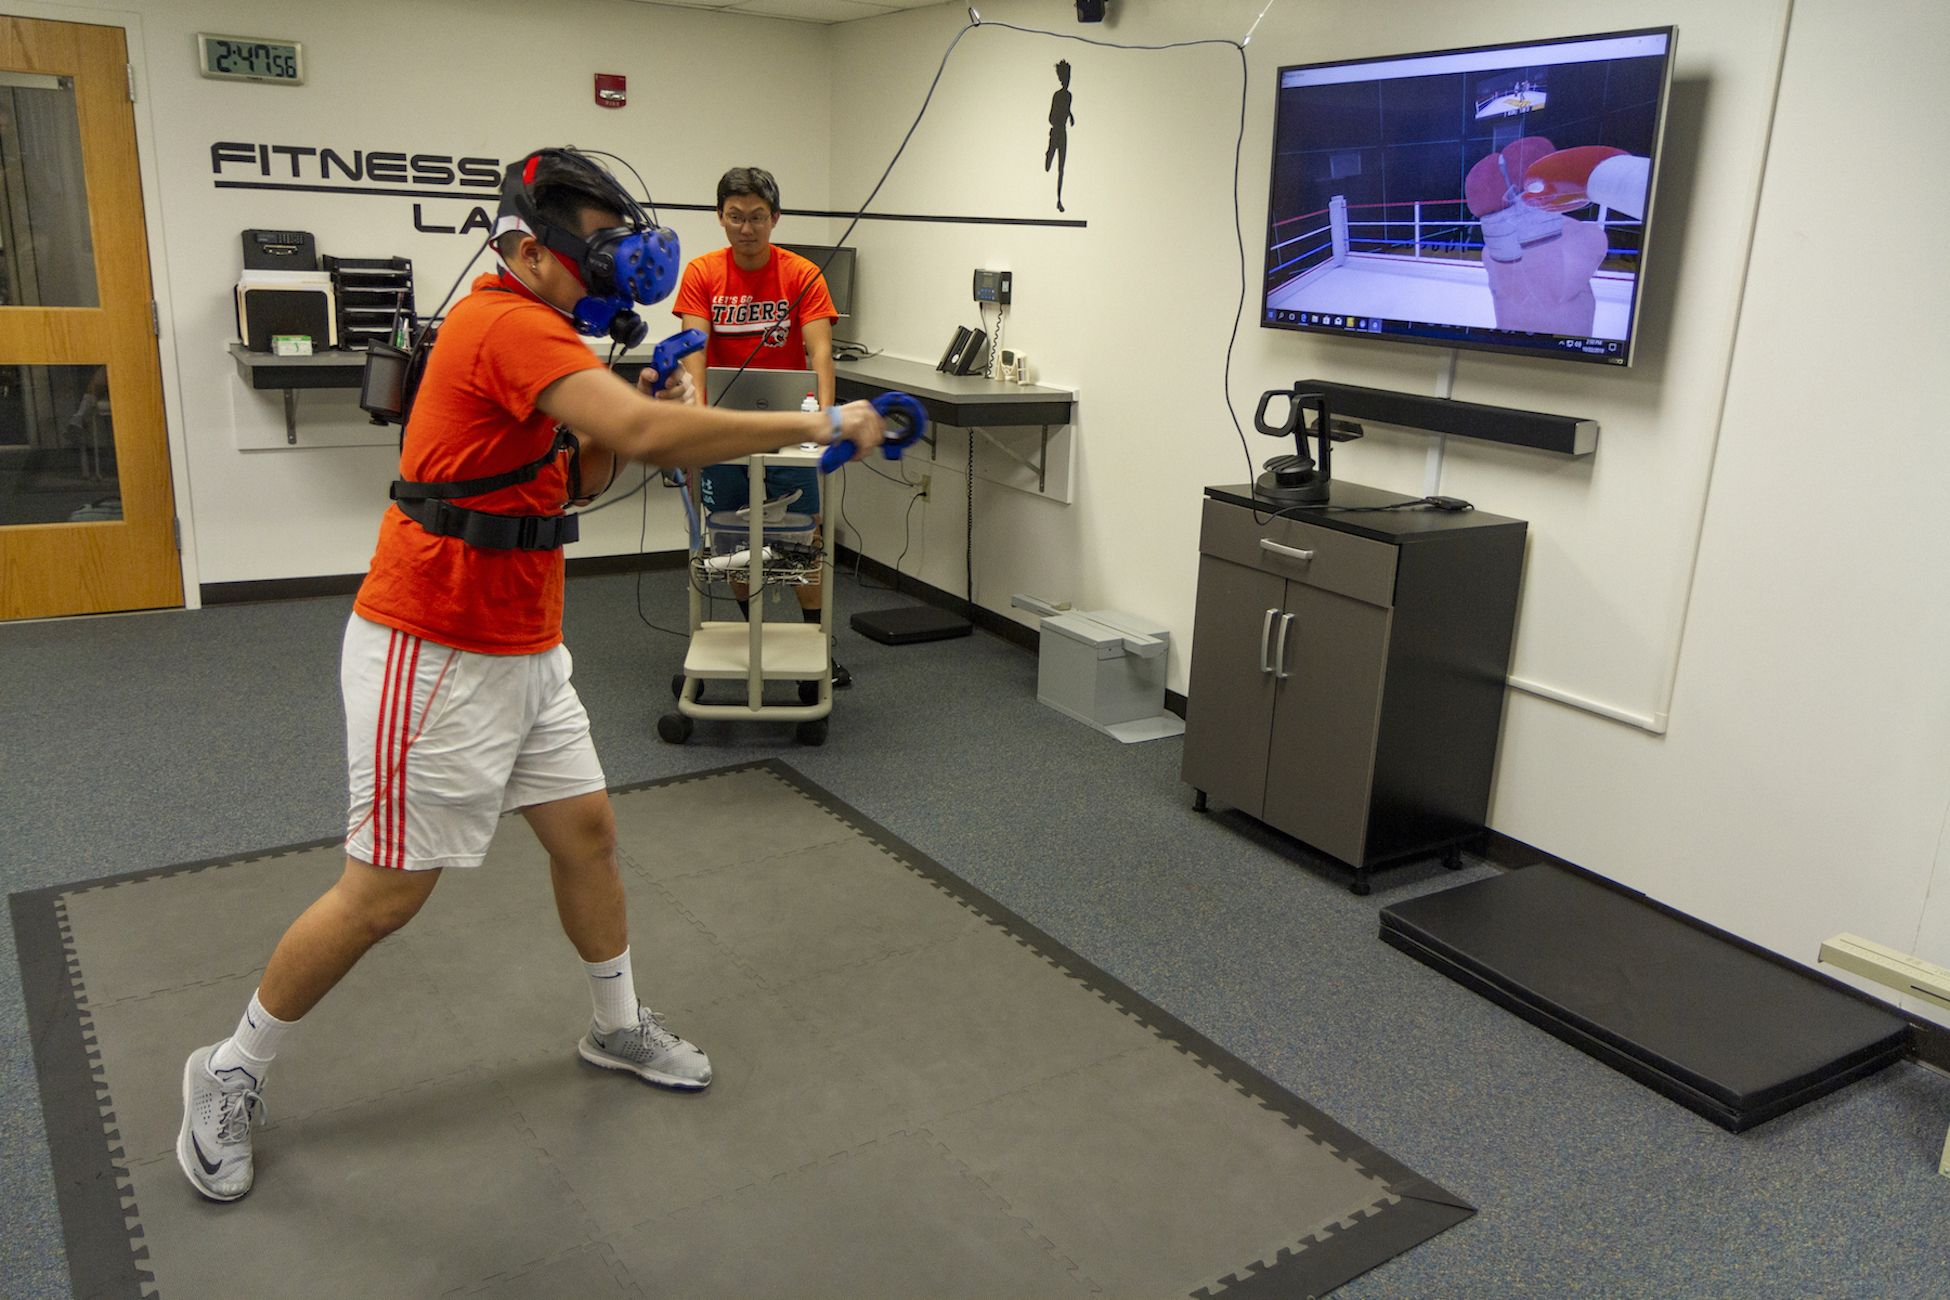 Student engaged in virtual reality boxing